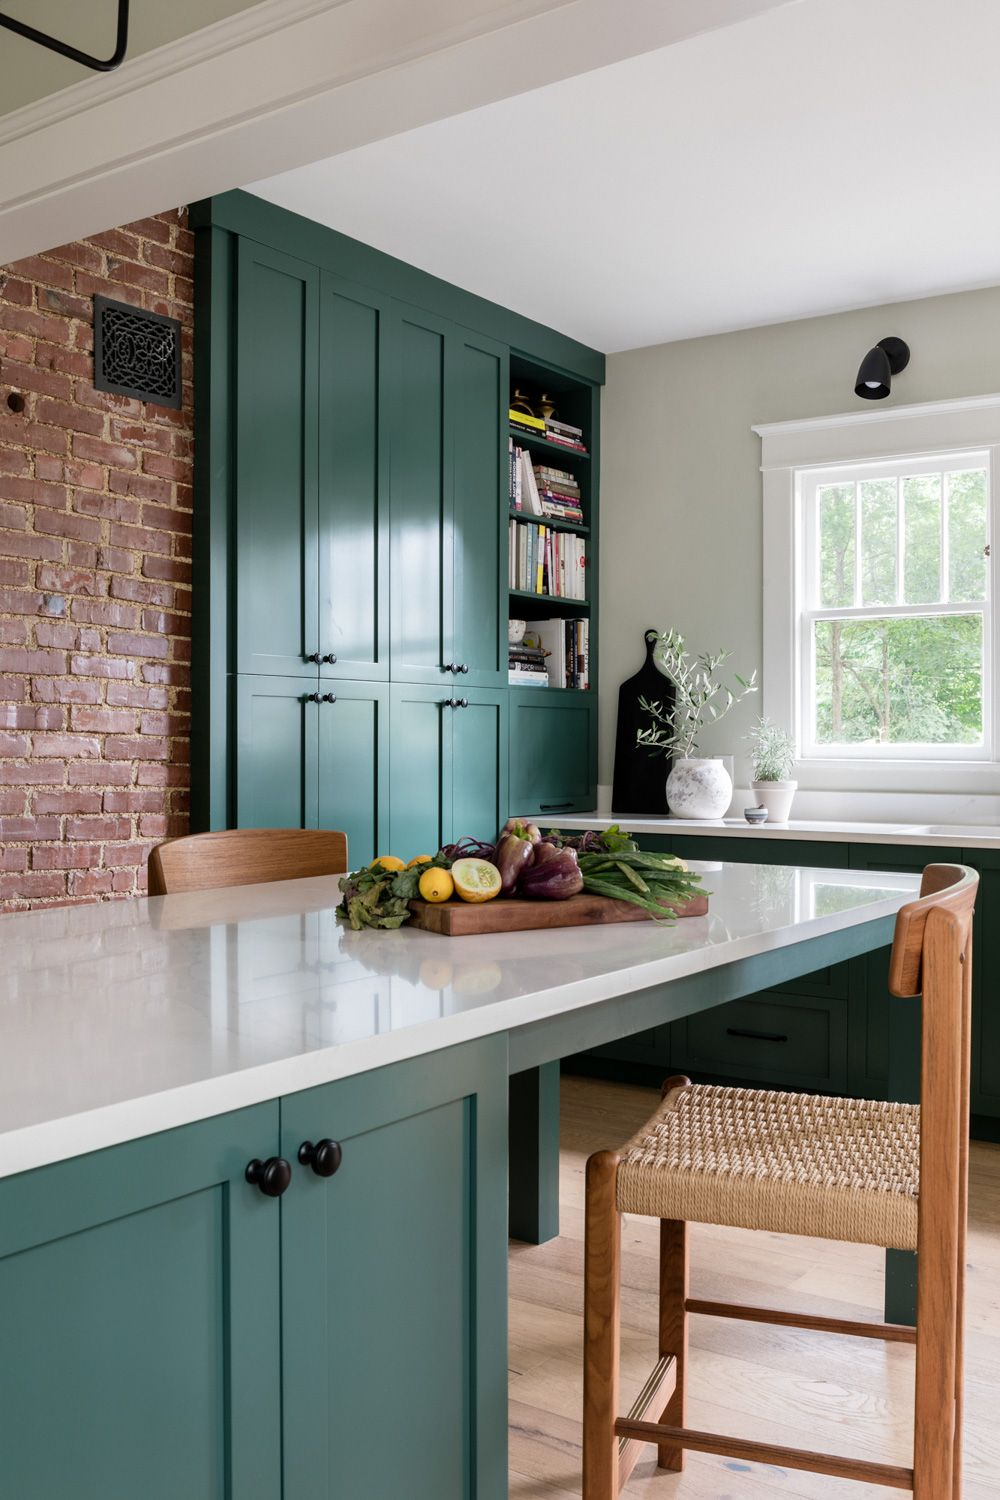 Kitchen Renovation Nashville Dark Green Cabinets Exposed Brick Dark Green Kitchen Kitchen Renovation Green Cabinets